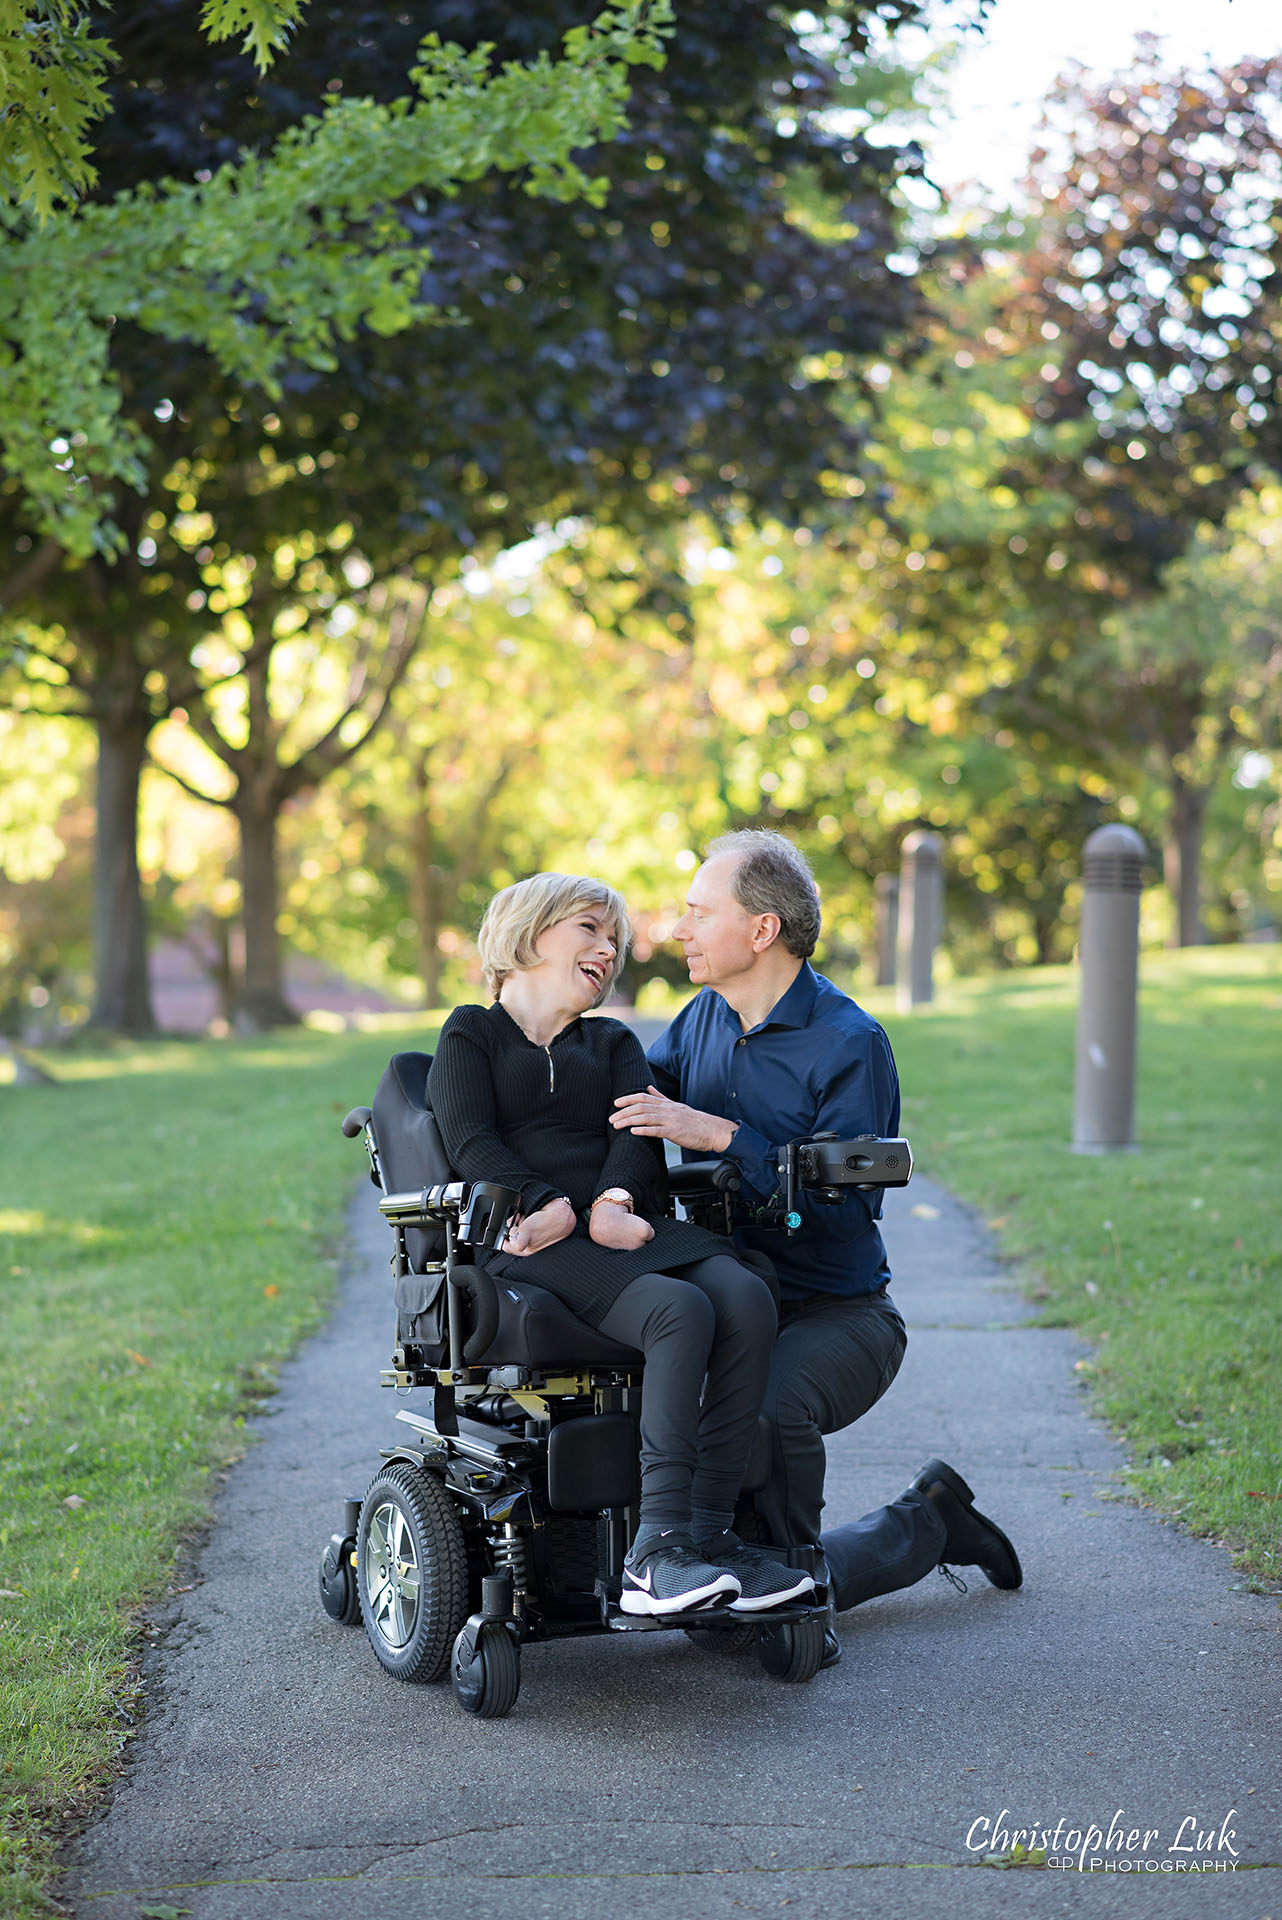 Christopher Luk Toronto Wedding Photographer Whitby Durham Engagement Session Bride Groom Candid Natural Photojournalistic Wheelchair Path Pathway Kneel Talking Together